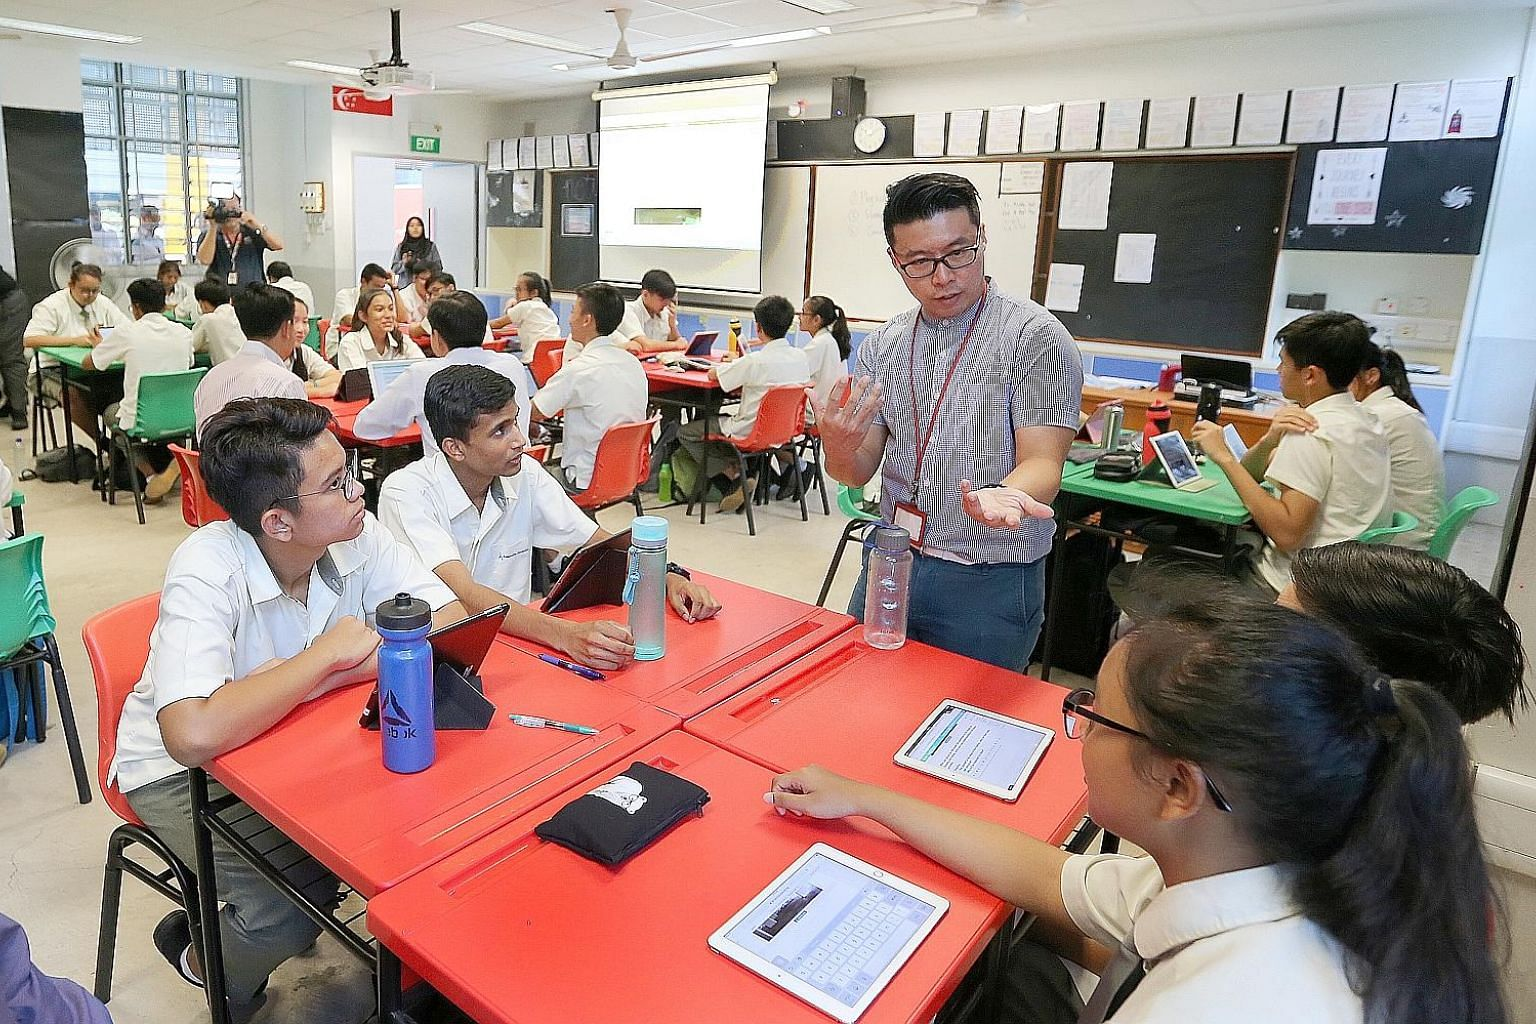 Admiralty Secondary School teacher Tay Peiyong with his students in August 2017. Teachers say they spend less time on administrative work and marking, giving them more time to teach. But they still work more and have less classroom time than many ove